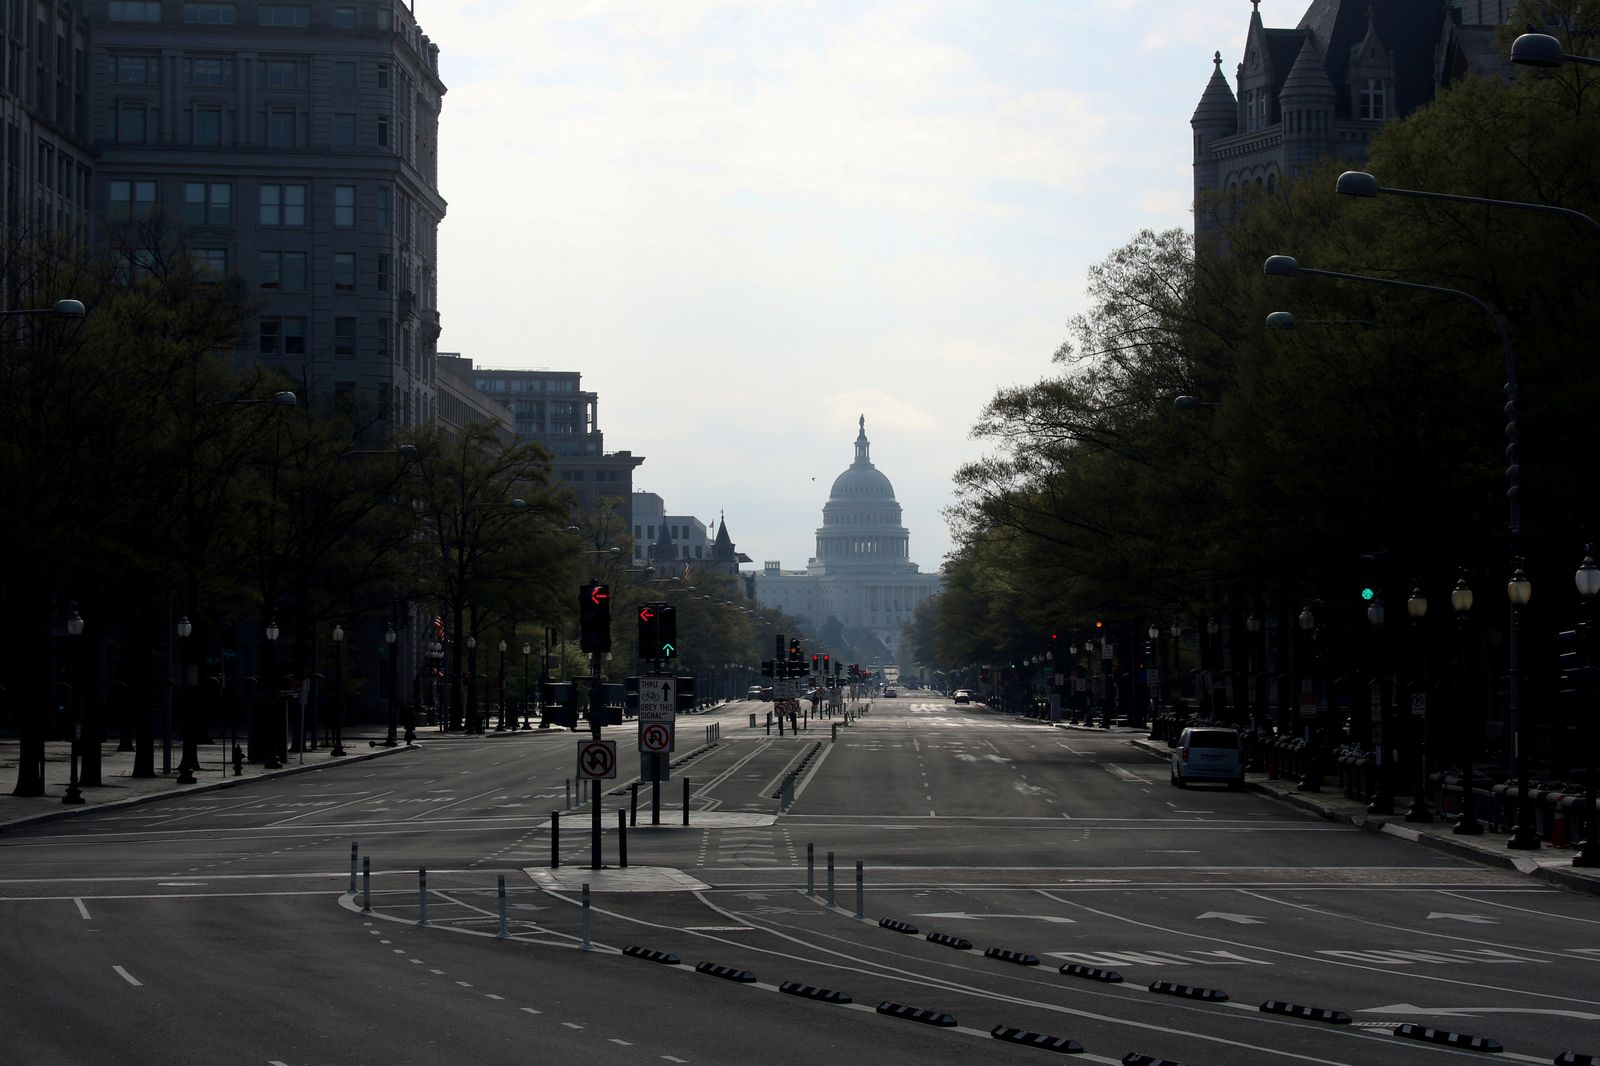 FILE PHOTO: The downtown district of Washington, looking east to the U.S. Capitol, remains largely empty to try to limit the spread of COVID-19 during the coronavirus disease pandemic in Washington